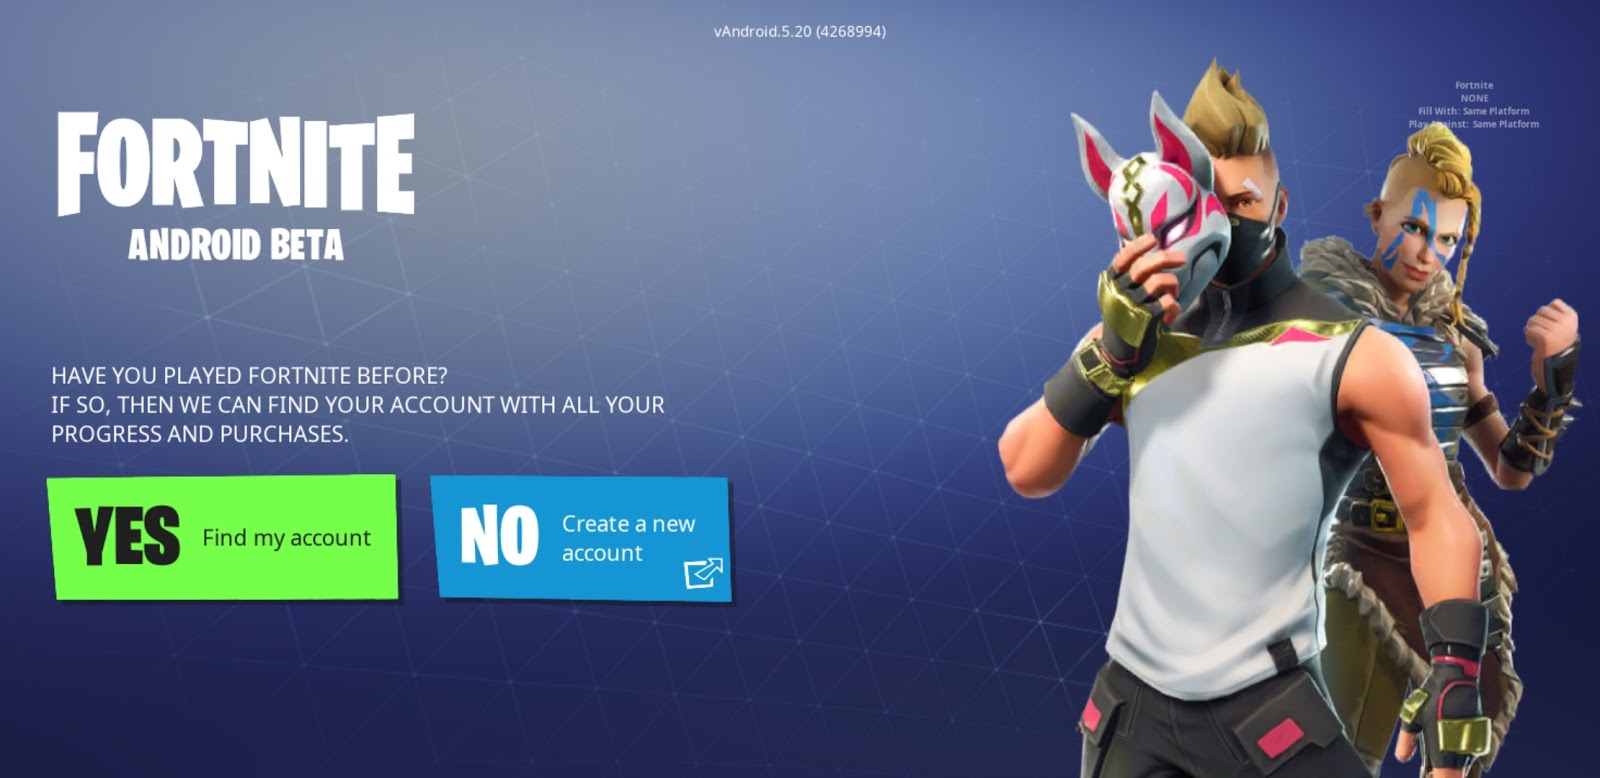 [APK] Fortnite Is Now Live For Android But Only For Samsung Devices For Now